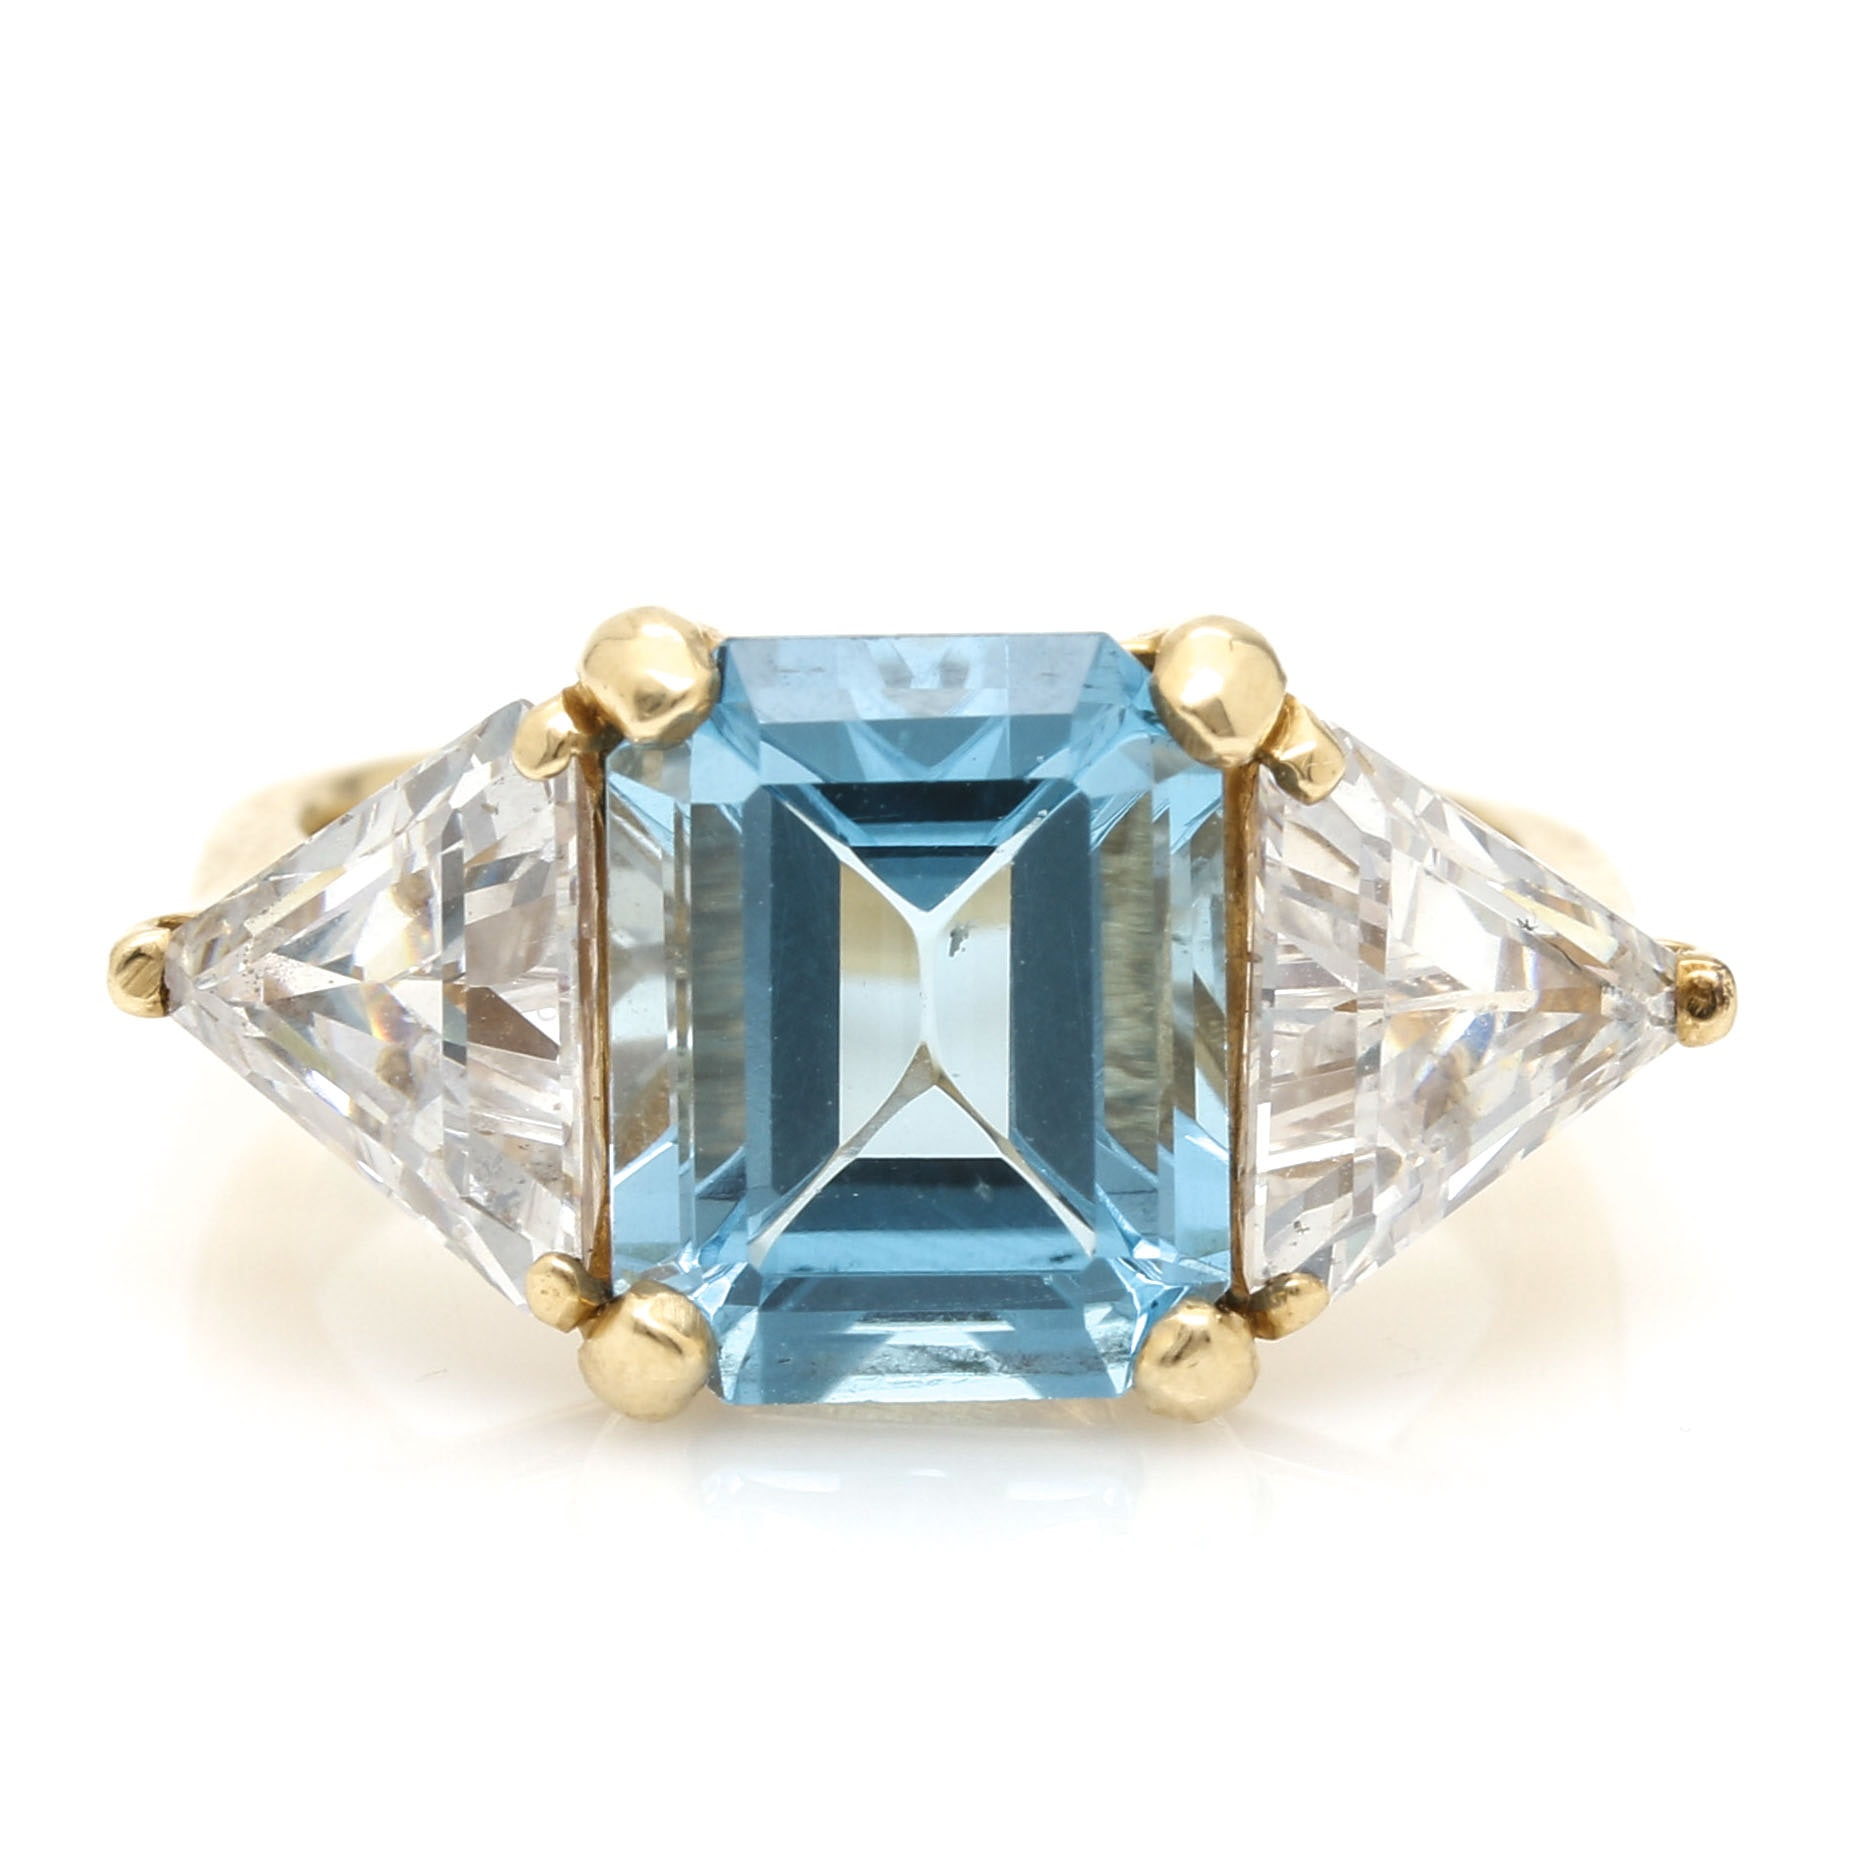 14K Yellow Gold 3.80 CTS Blue Topaz and Cubic Zirconia Ring